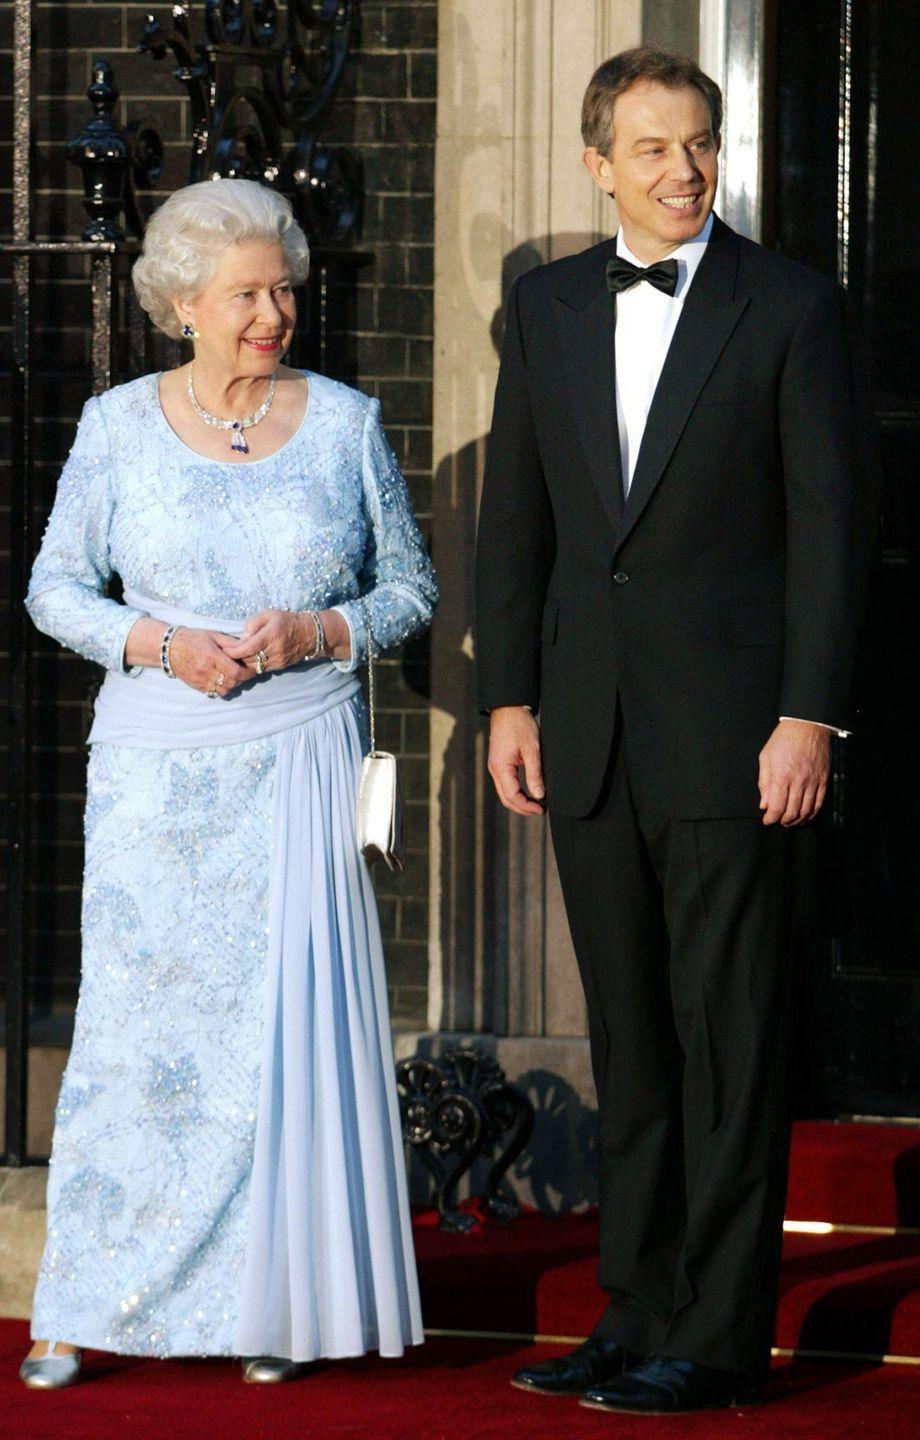 <p>In 2002, Queen Elizabeth attended a dinner at 10 Downing Street to celebrate her golden jubilee. She wore a tassel necklace, trefoil earrings, and bracelet. While their provenance is unknown, they have been rumored to have been a gift from Middle Eastern royalty (another similar tassel necklace belonging to the queen, set in emeralds, is said to have come from Sheikh Zayed bin Sultan Al Nahyan of the United Arab Emirates).</p>